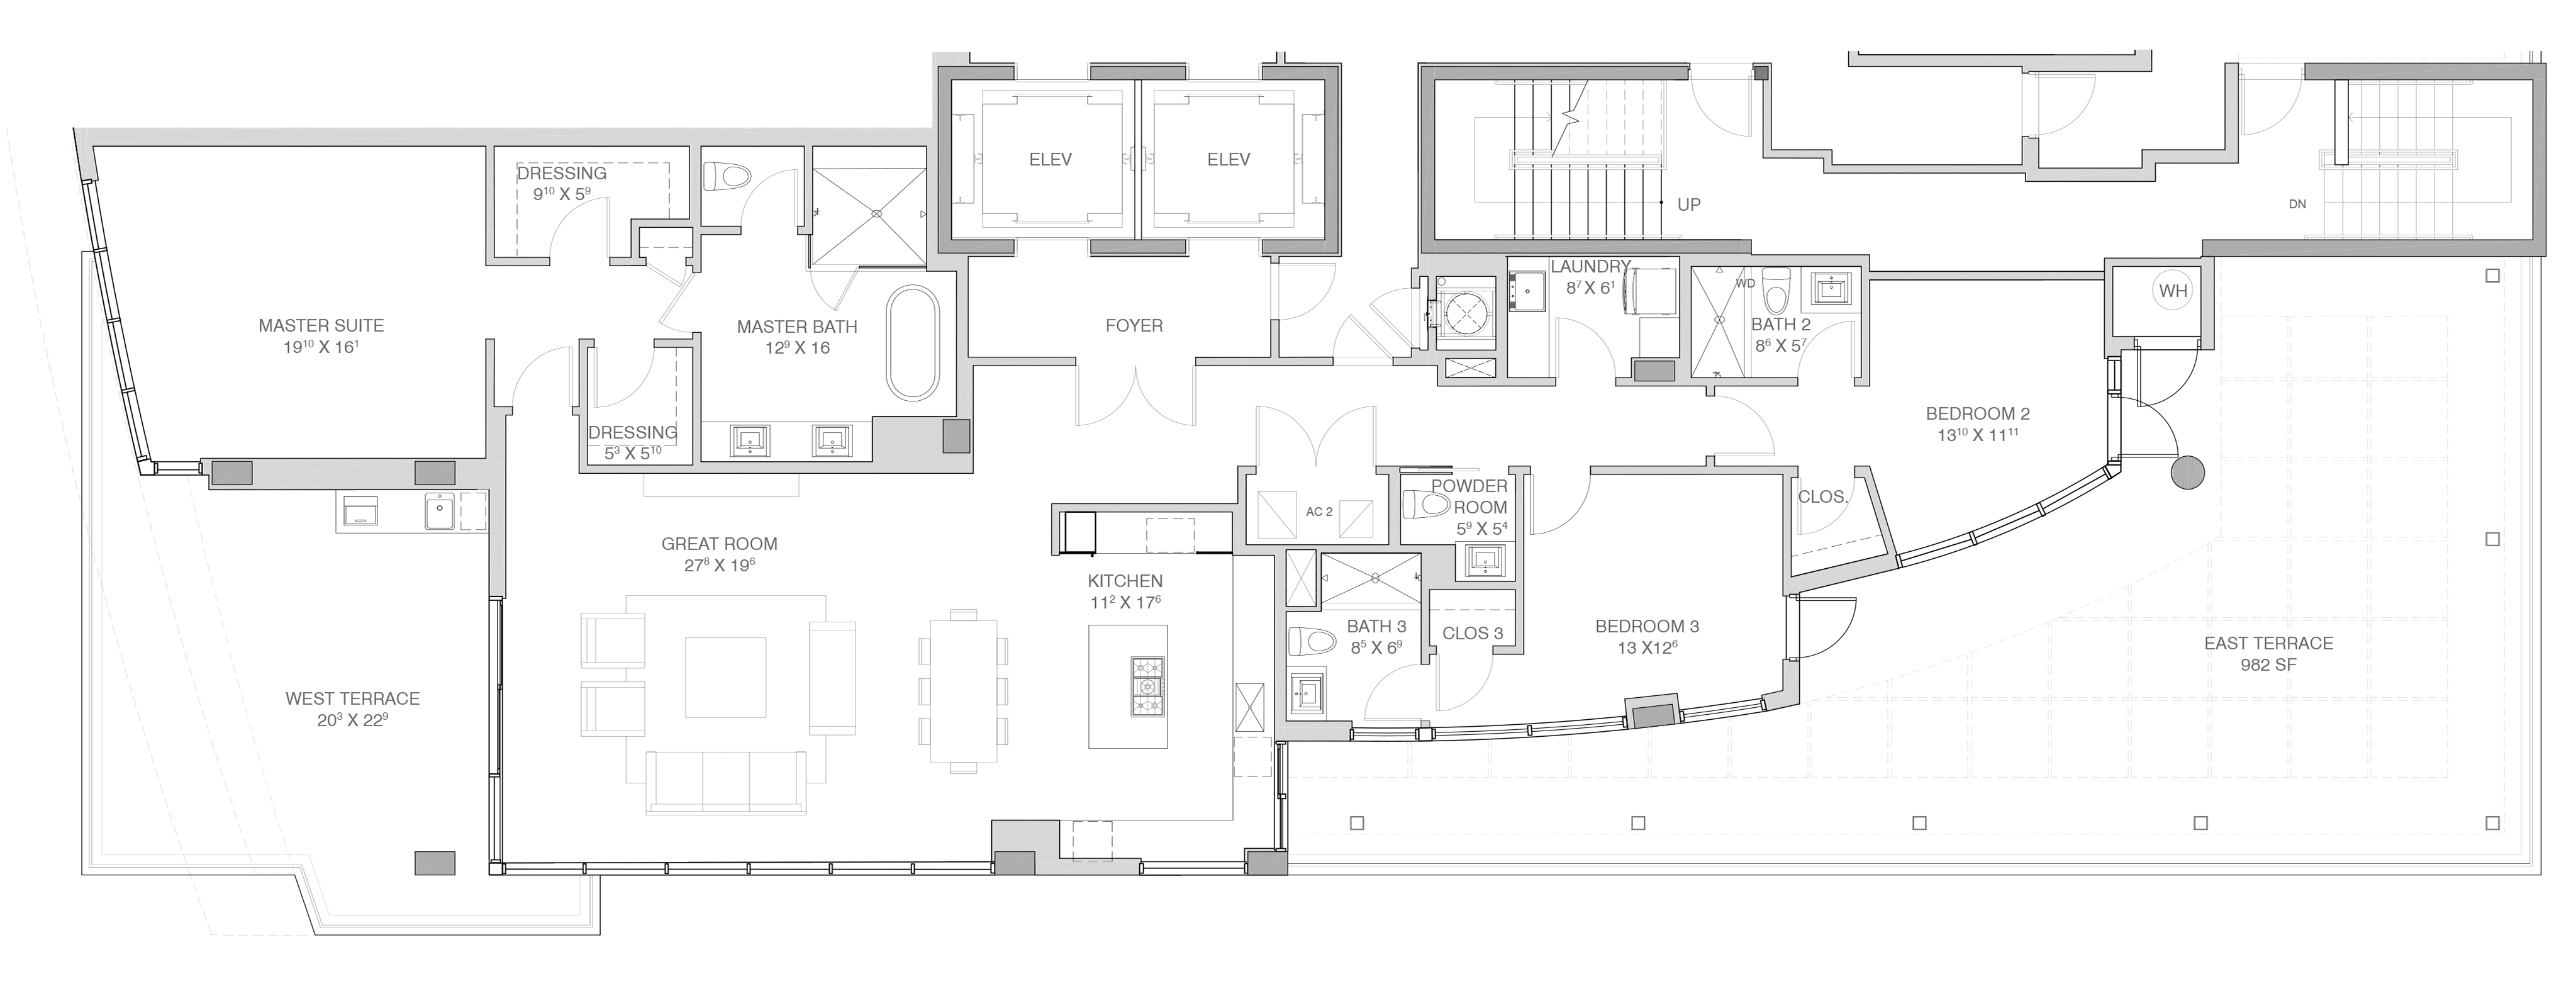 Adagio Fort Lauderdale Beach - Floorplan 5